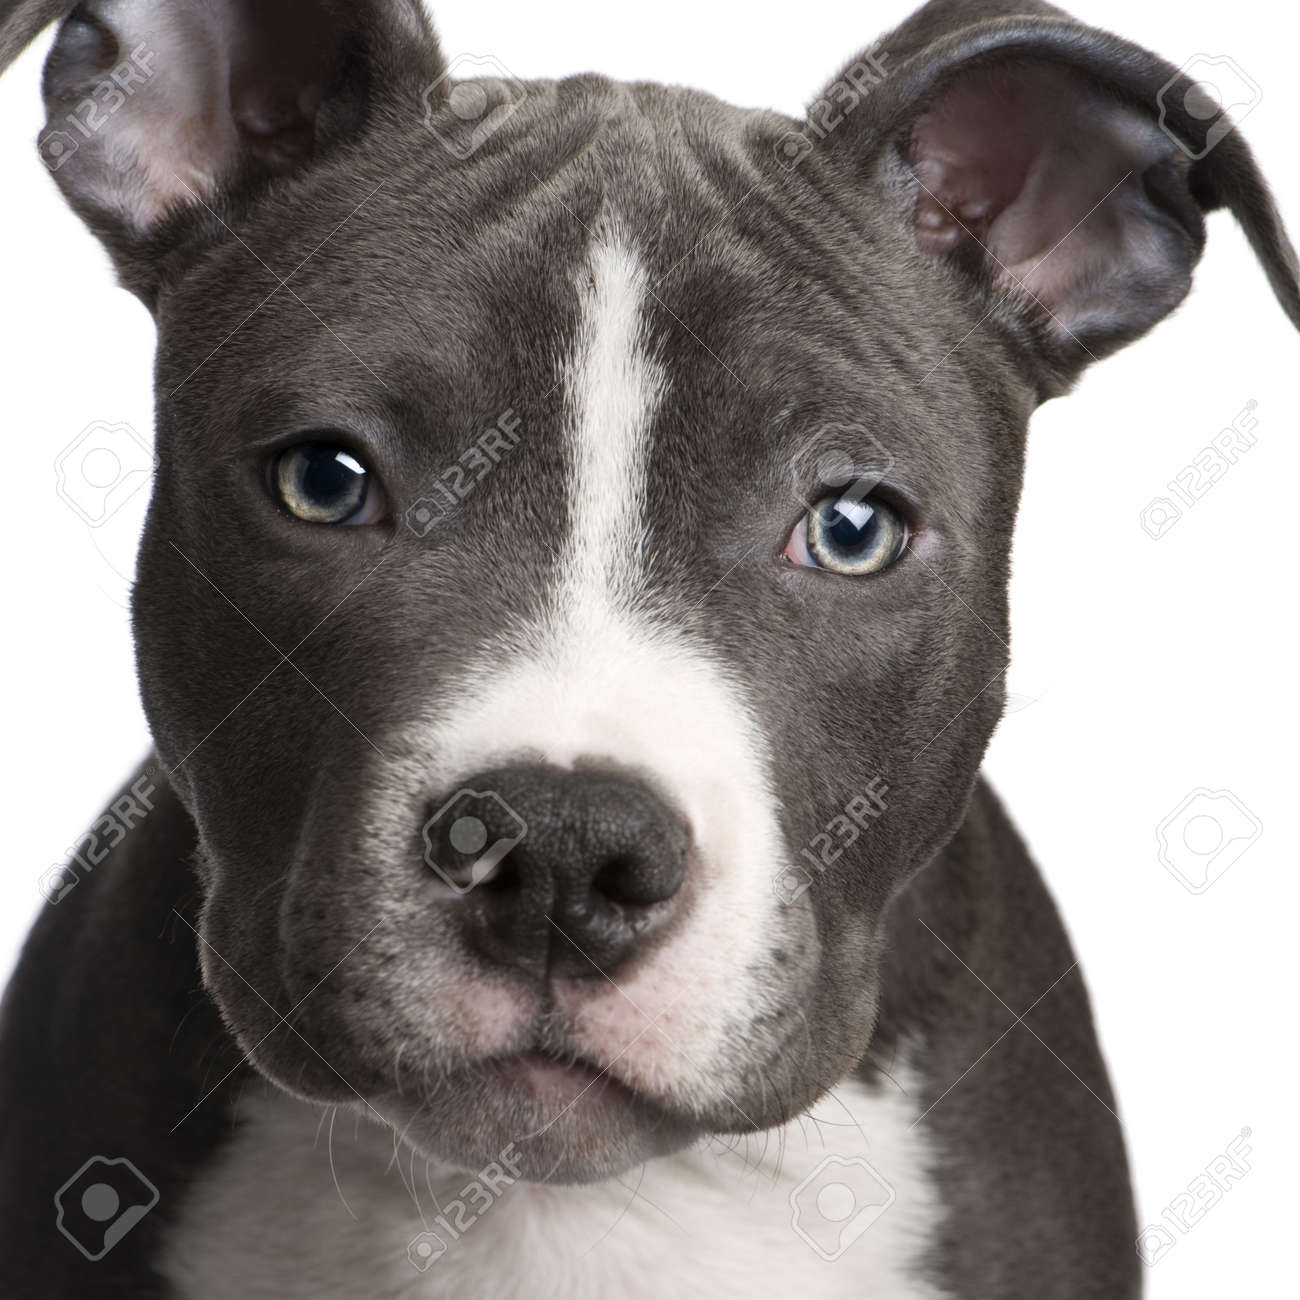 Pictures Of American Staffordshire Terrier American Staffordshire terrier